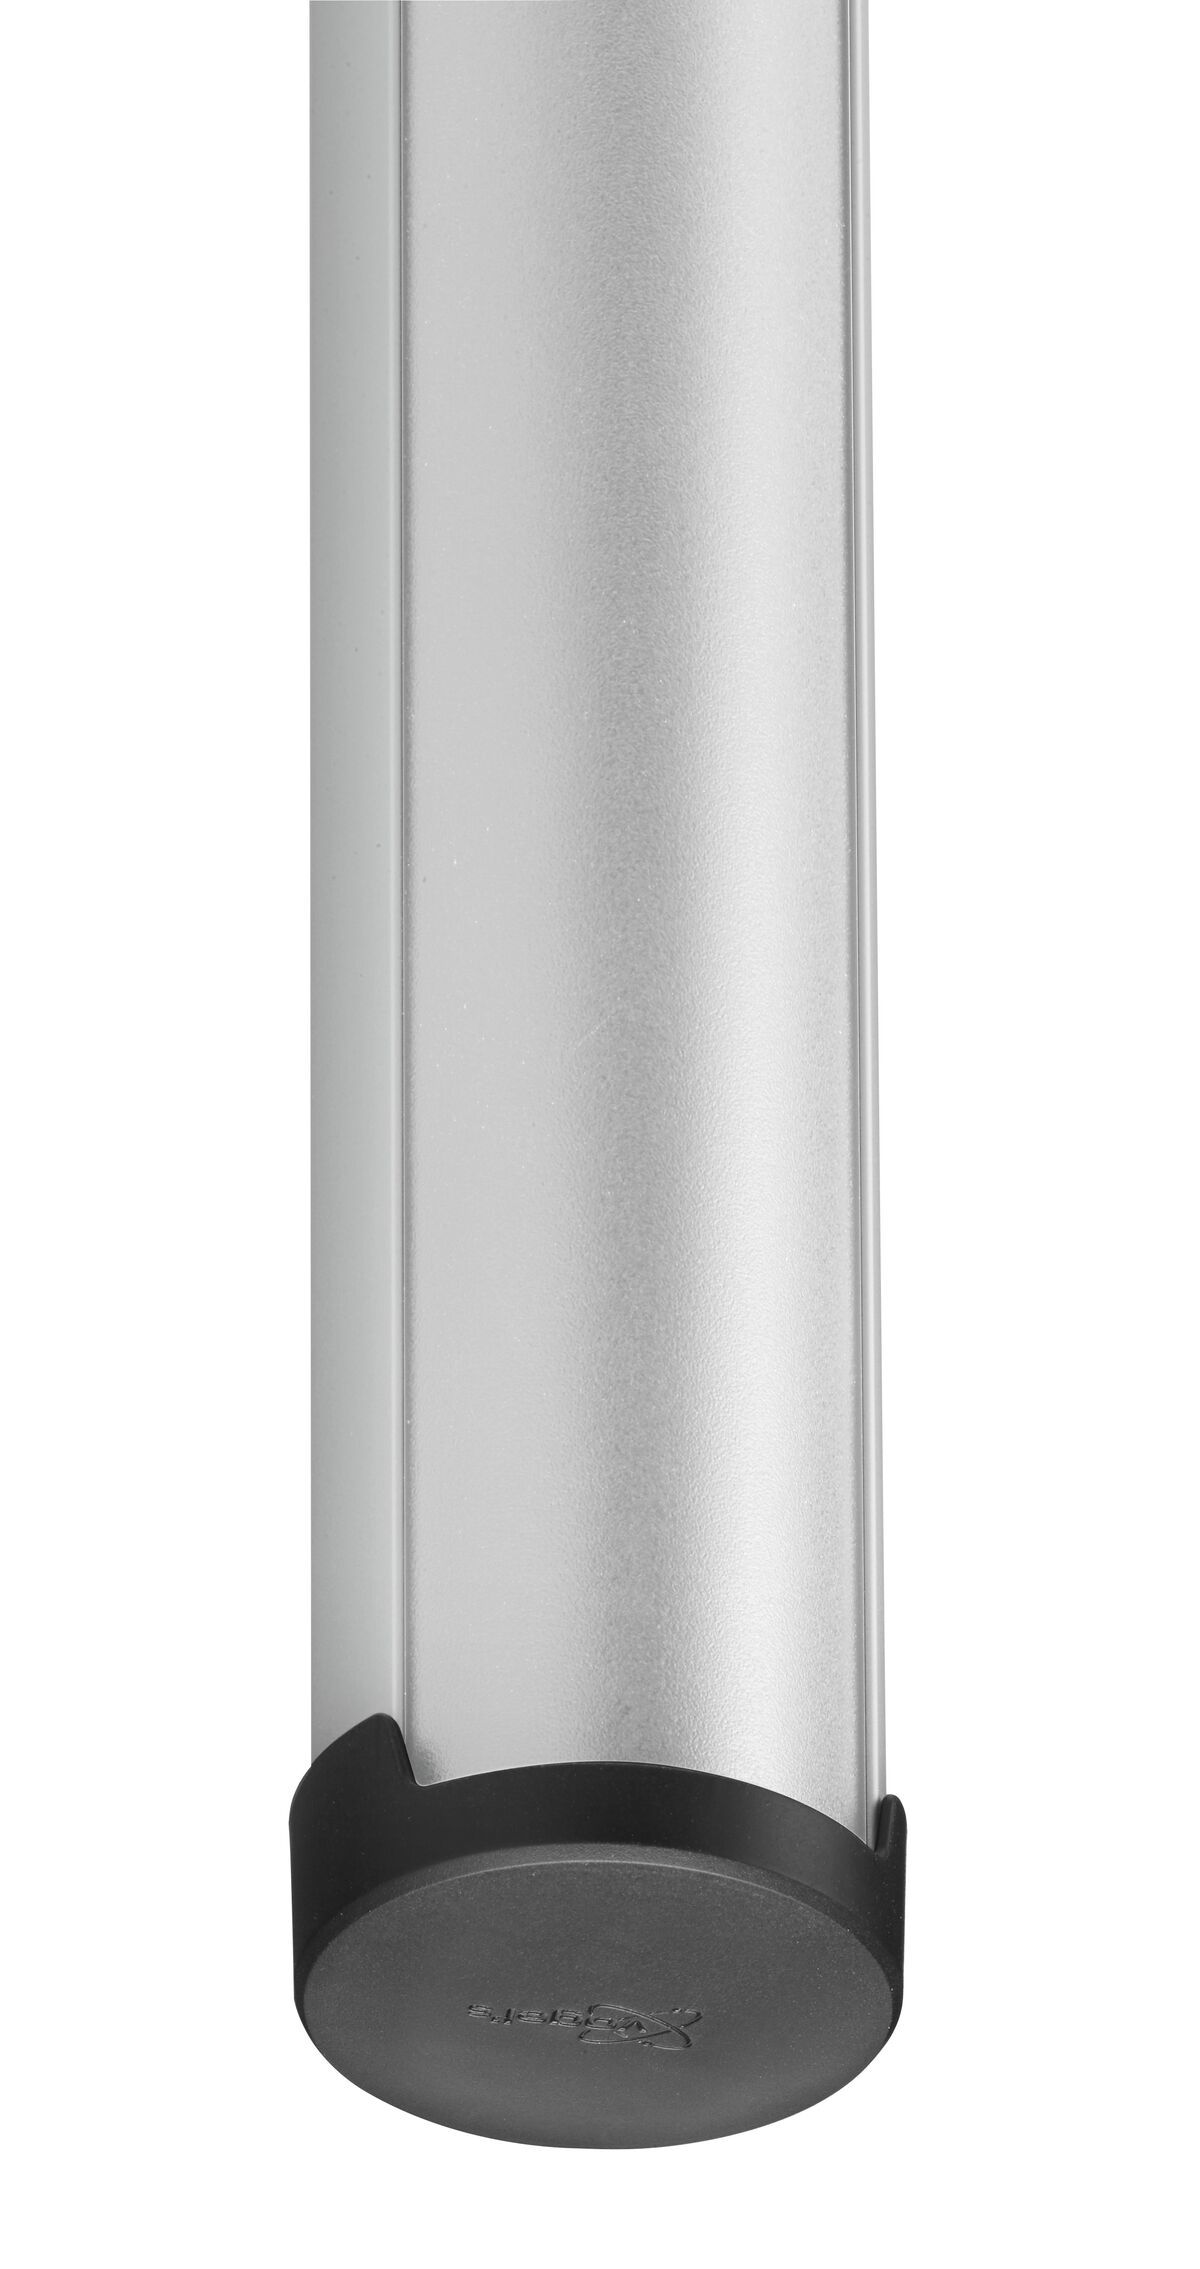 Vogel's PUC 2430 Tube 300 cm, silver - Product